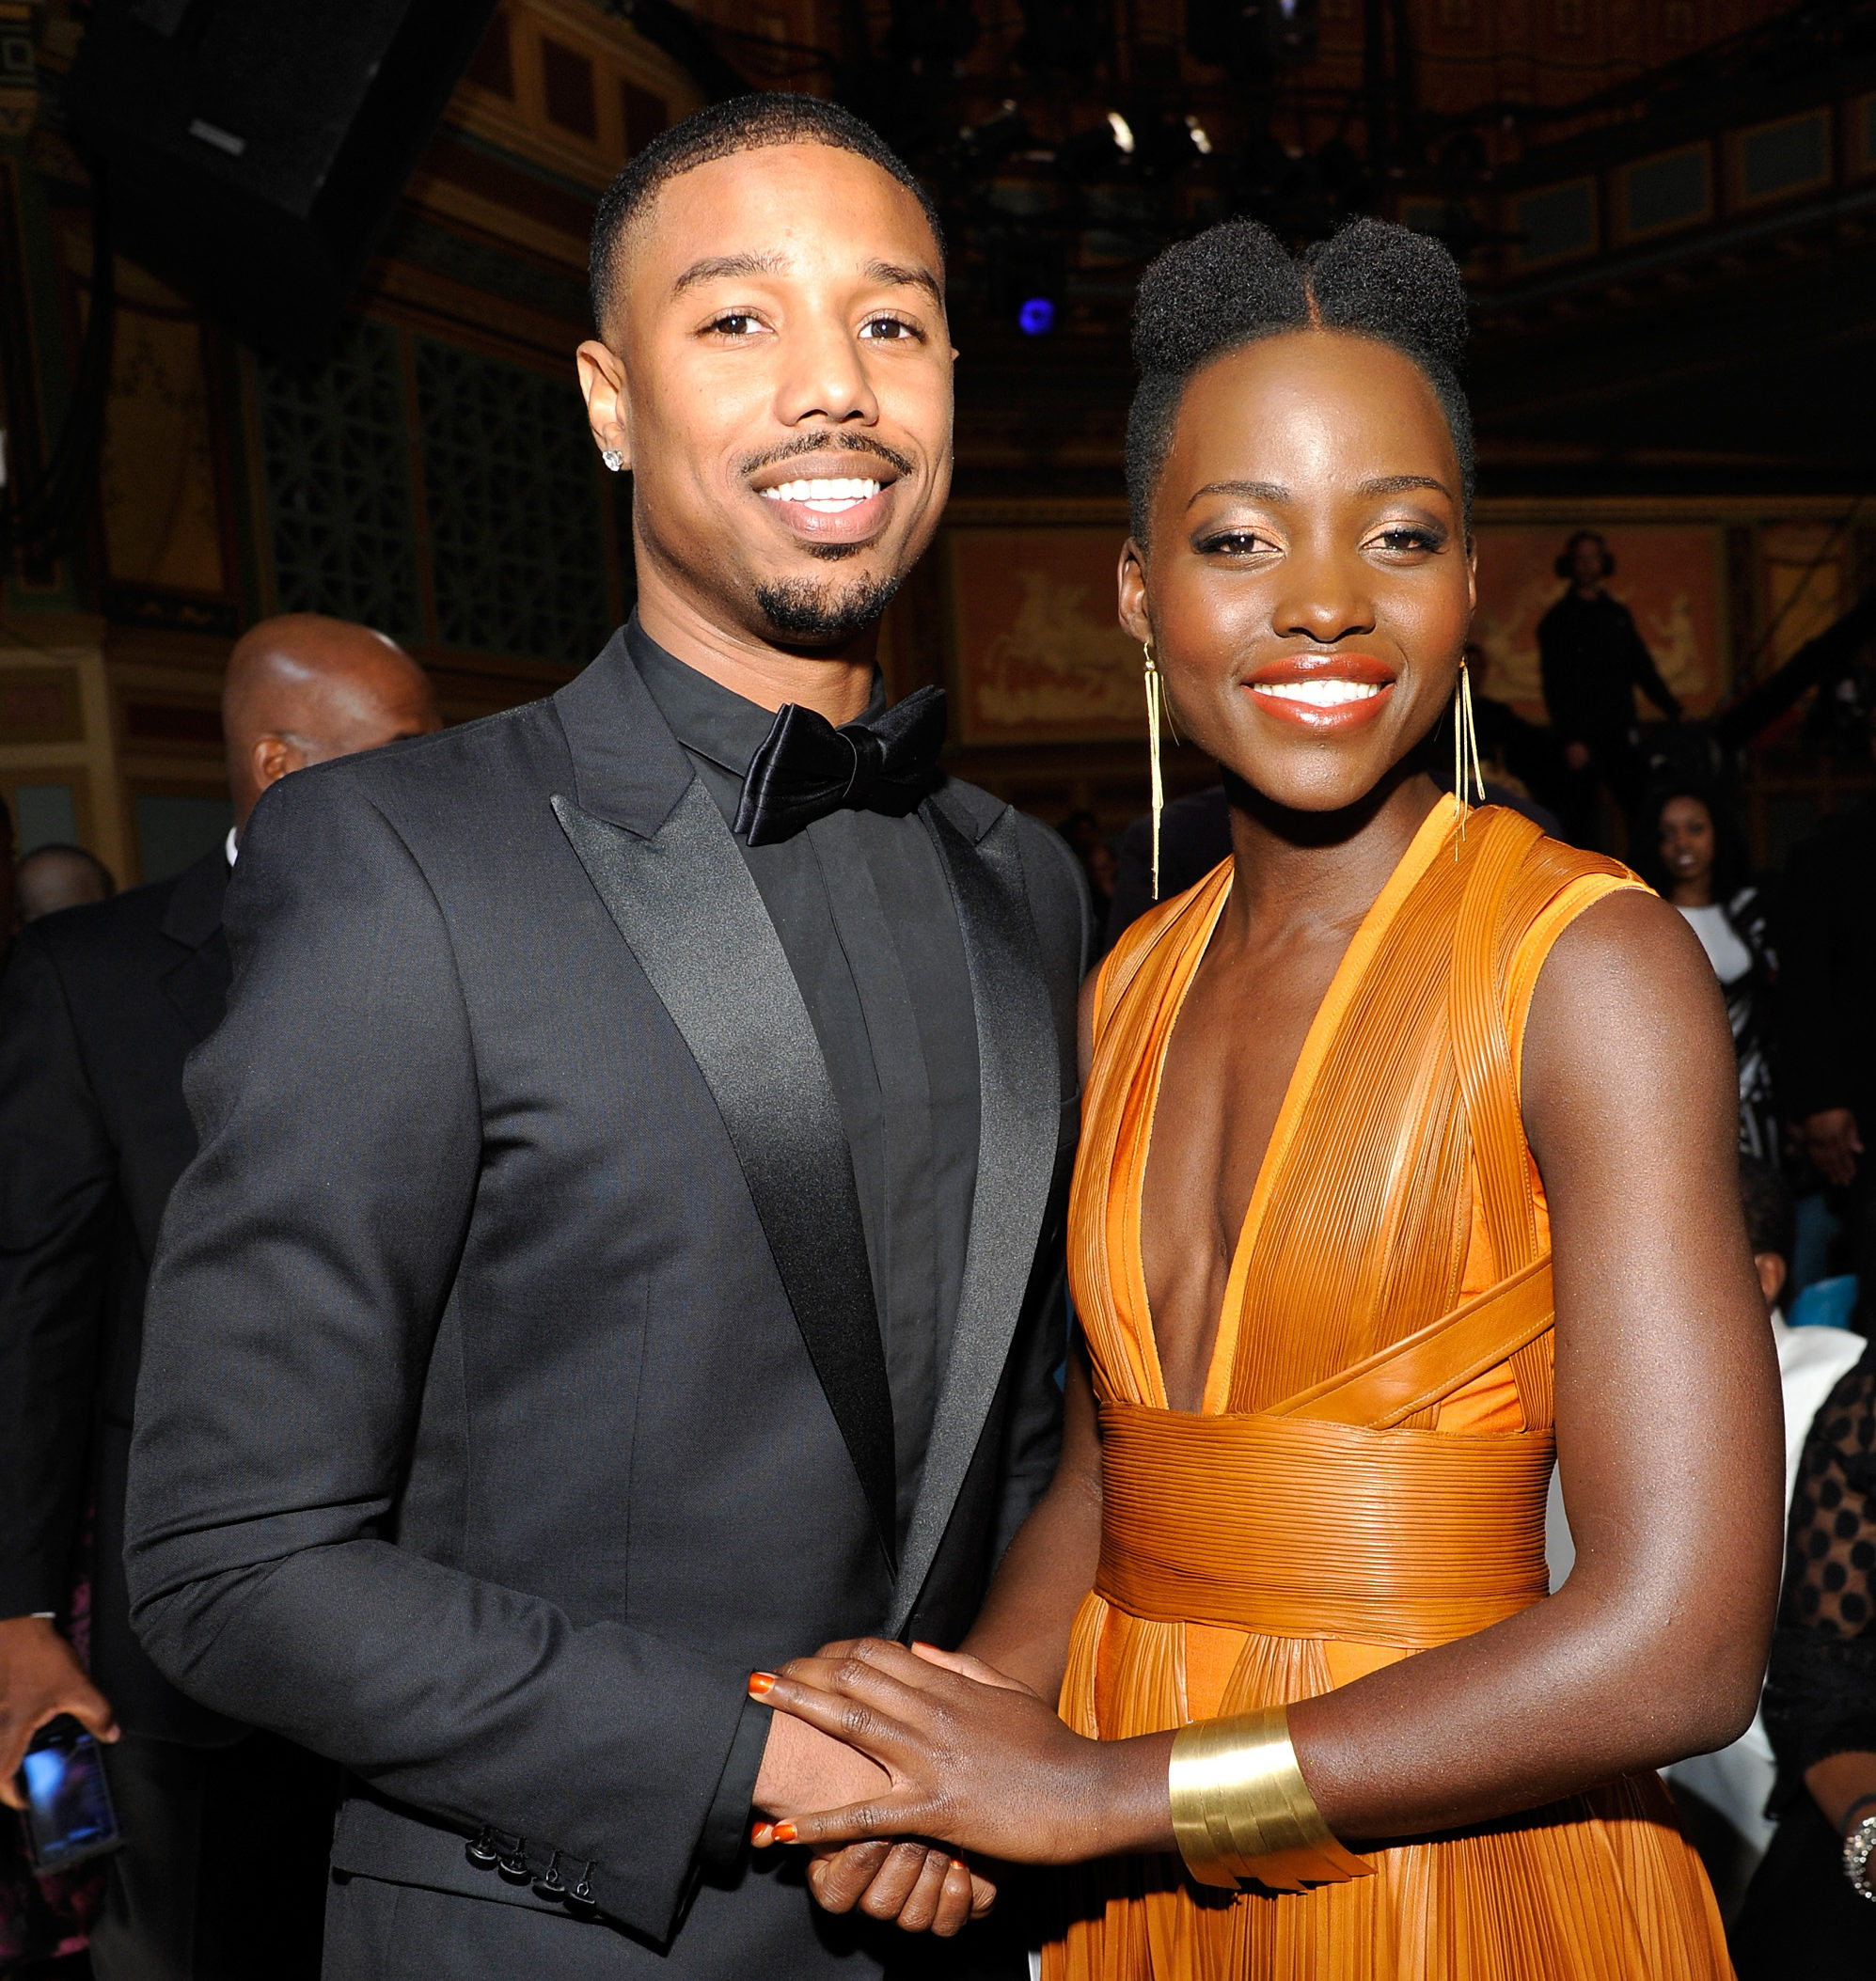 Here's why Michael B. Jordan keeps doing push-ups for Lupita Nyong'o